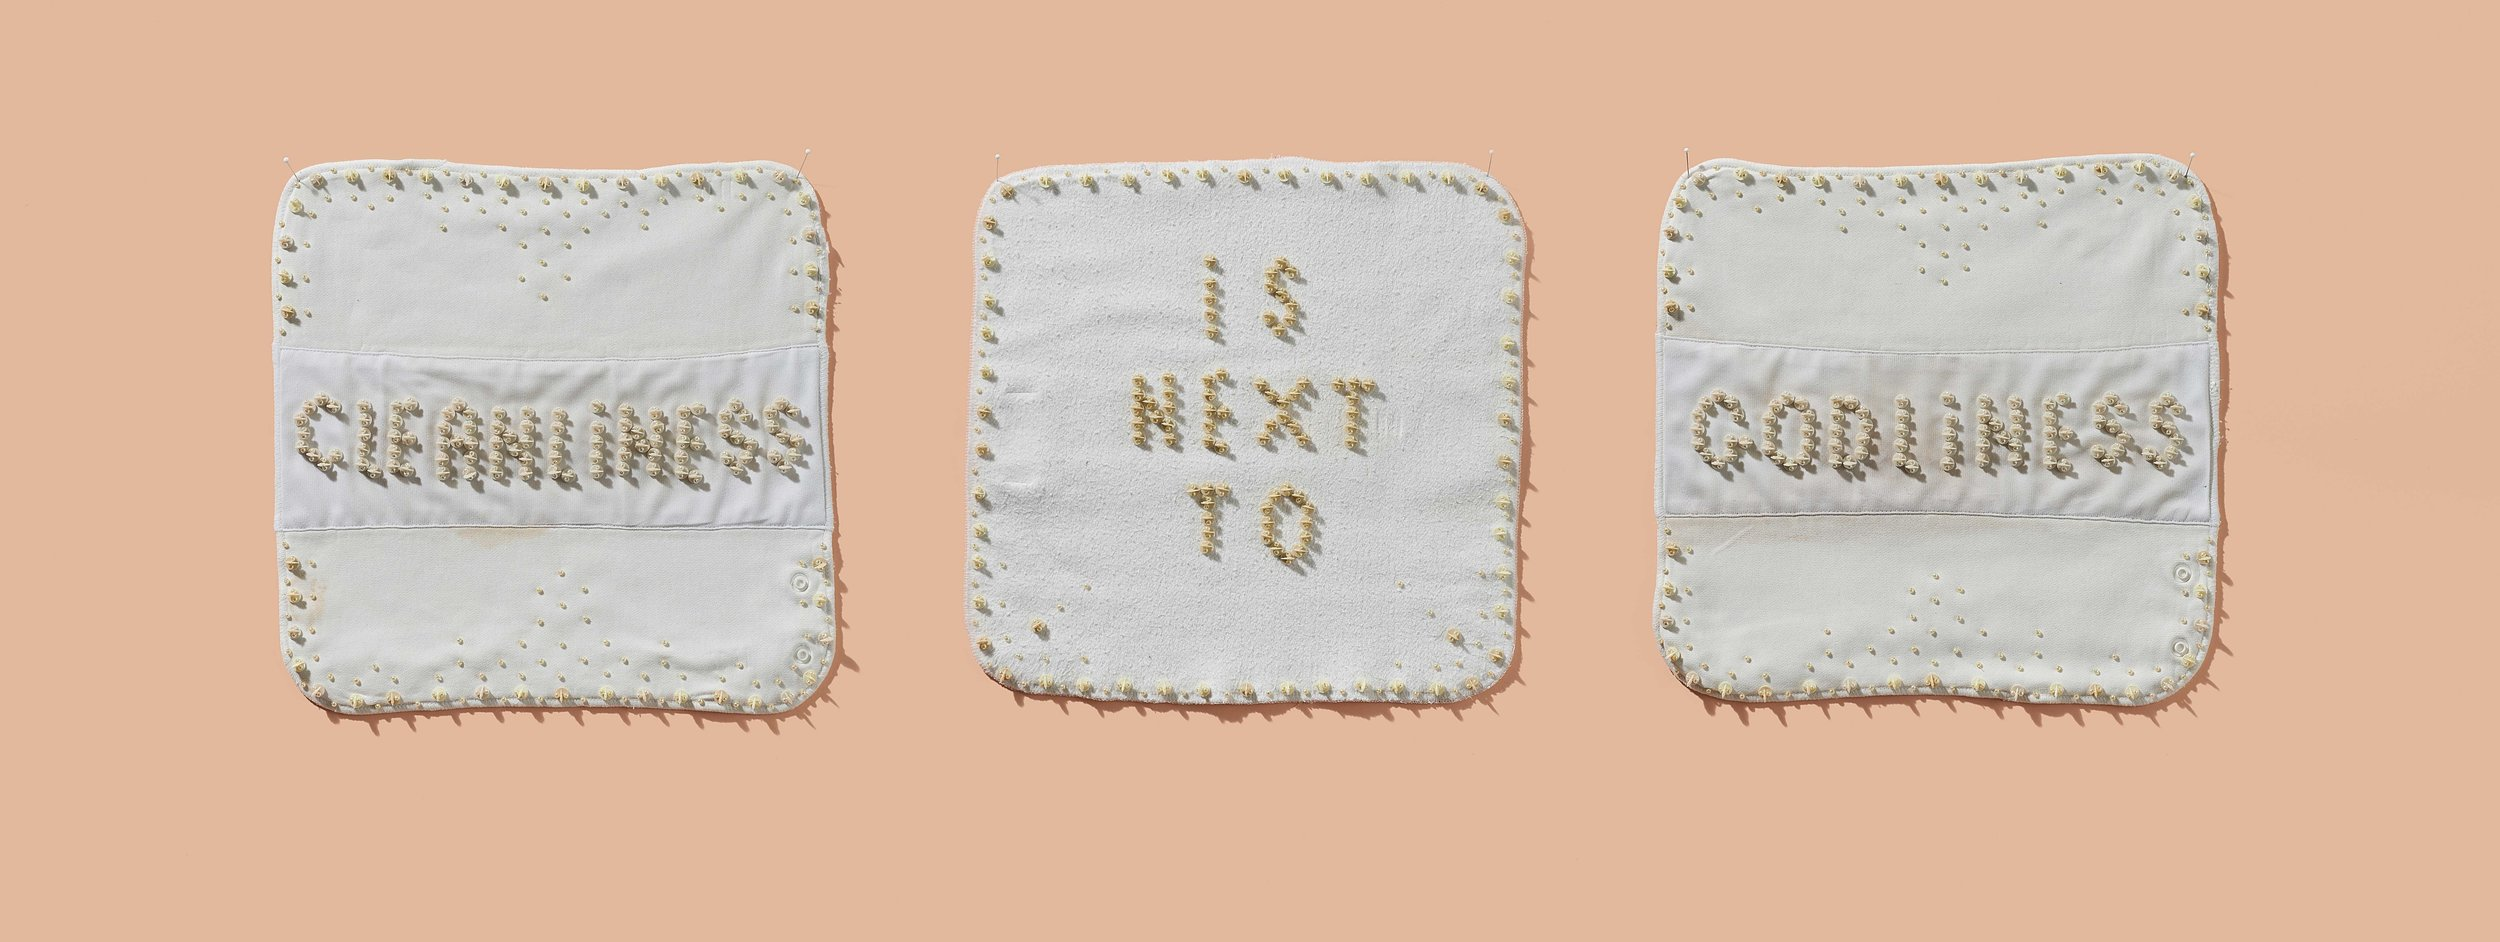 Deborah Prior,  Domestic White Work,  2019 ,  nappy liners, Squatter sheep tokens, beads ,  3 panels each approx. 320 x 320 mm. Photo: Sam Roberts.